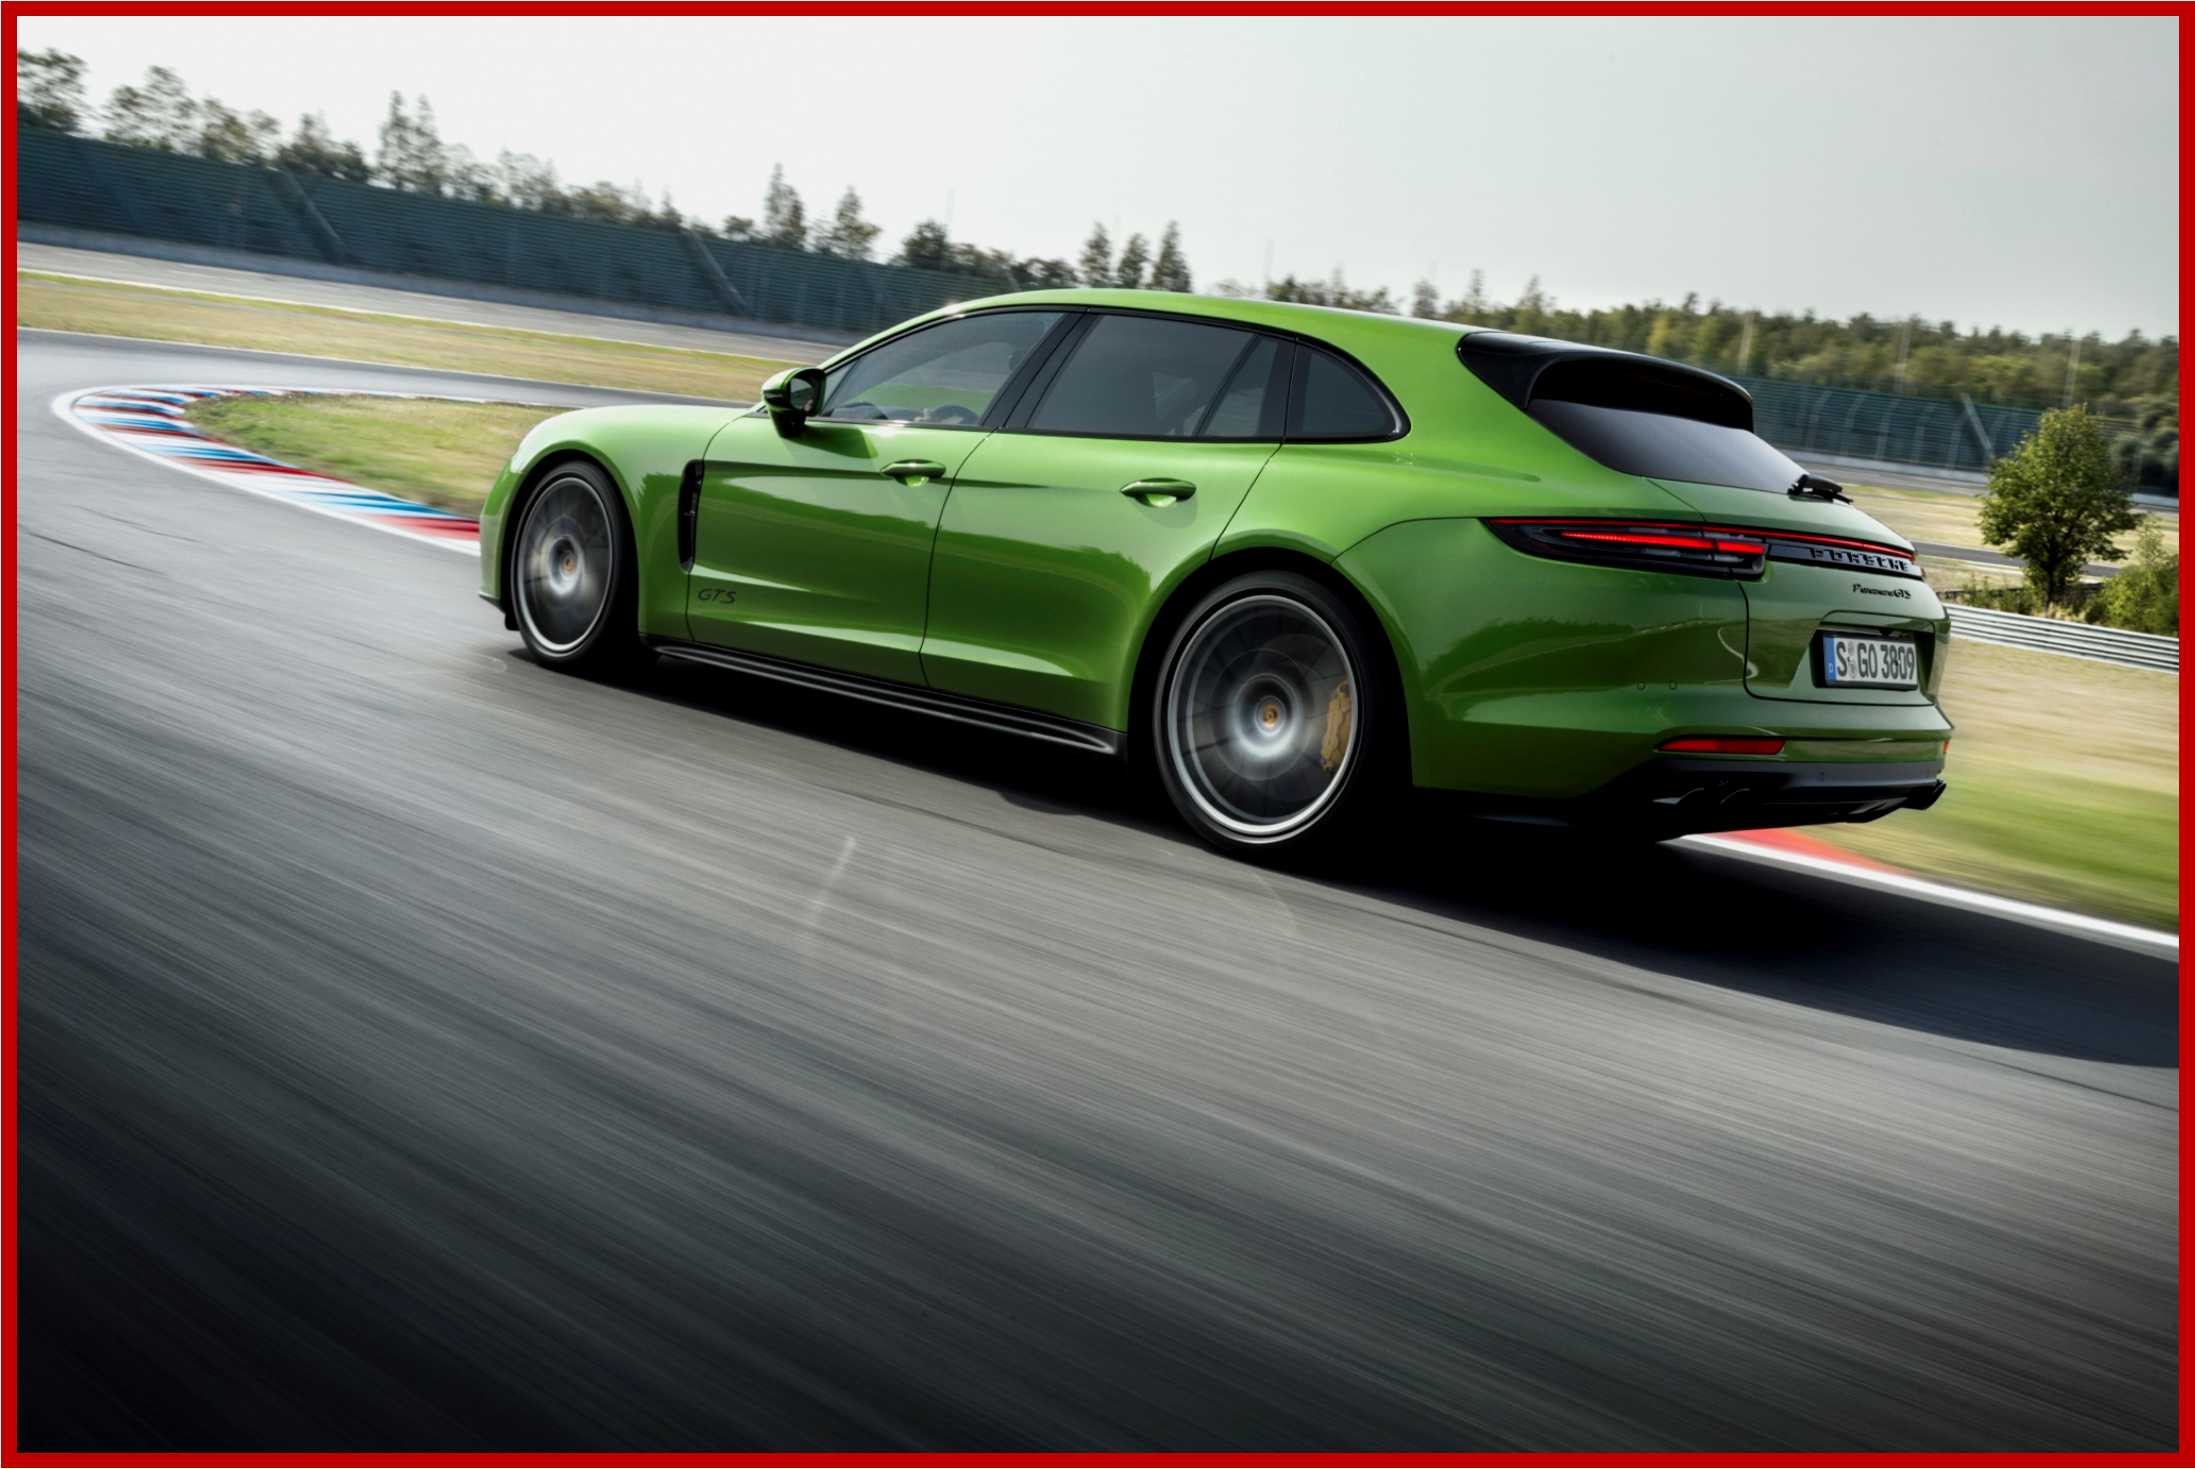 AutoInformed.com on Panamera GTS Sport Turismo